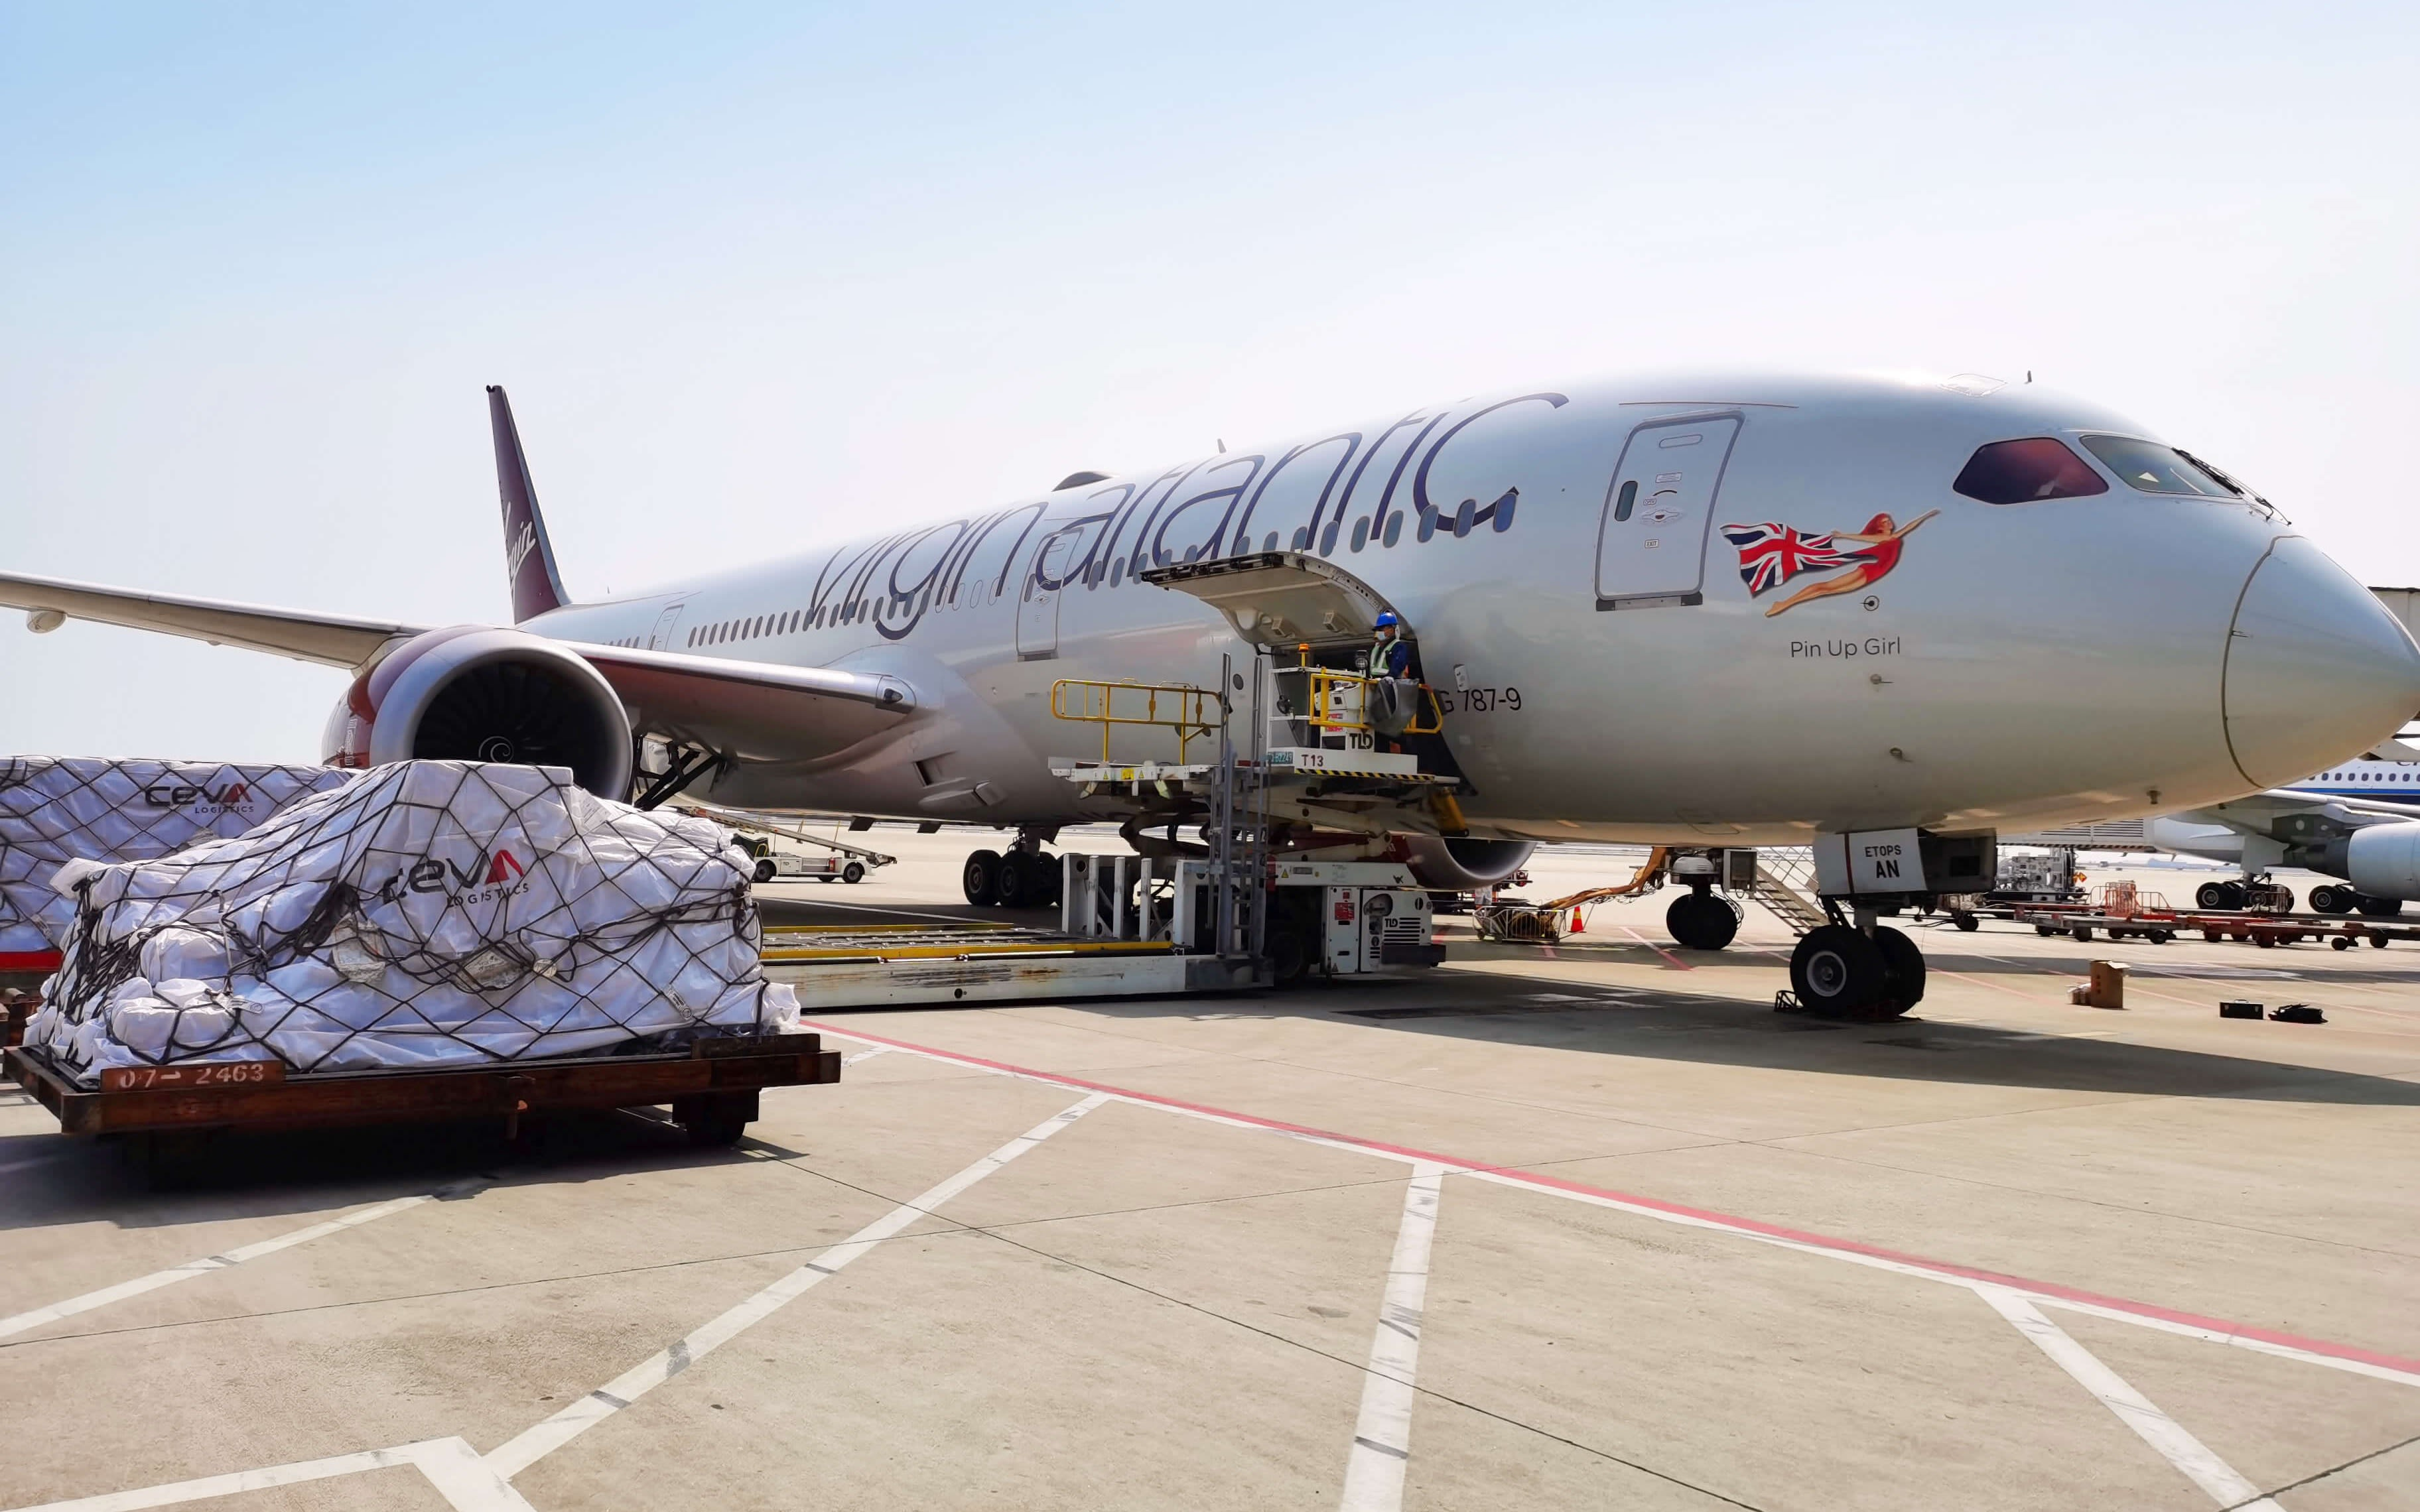 Cargo is loaded onto a Virgin Atlantic plane